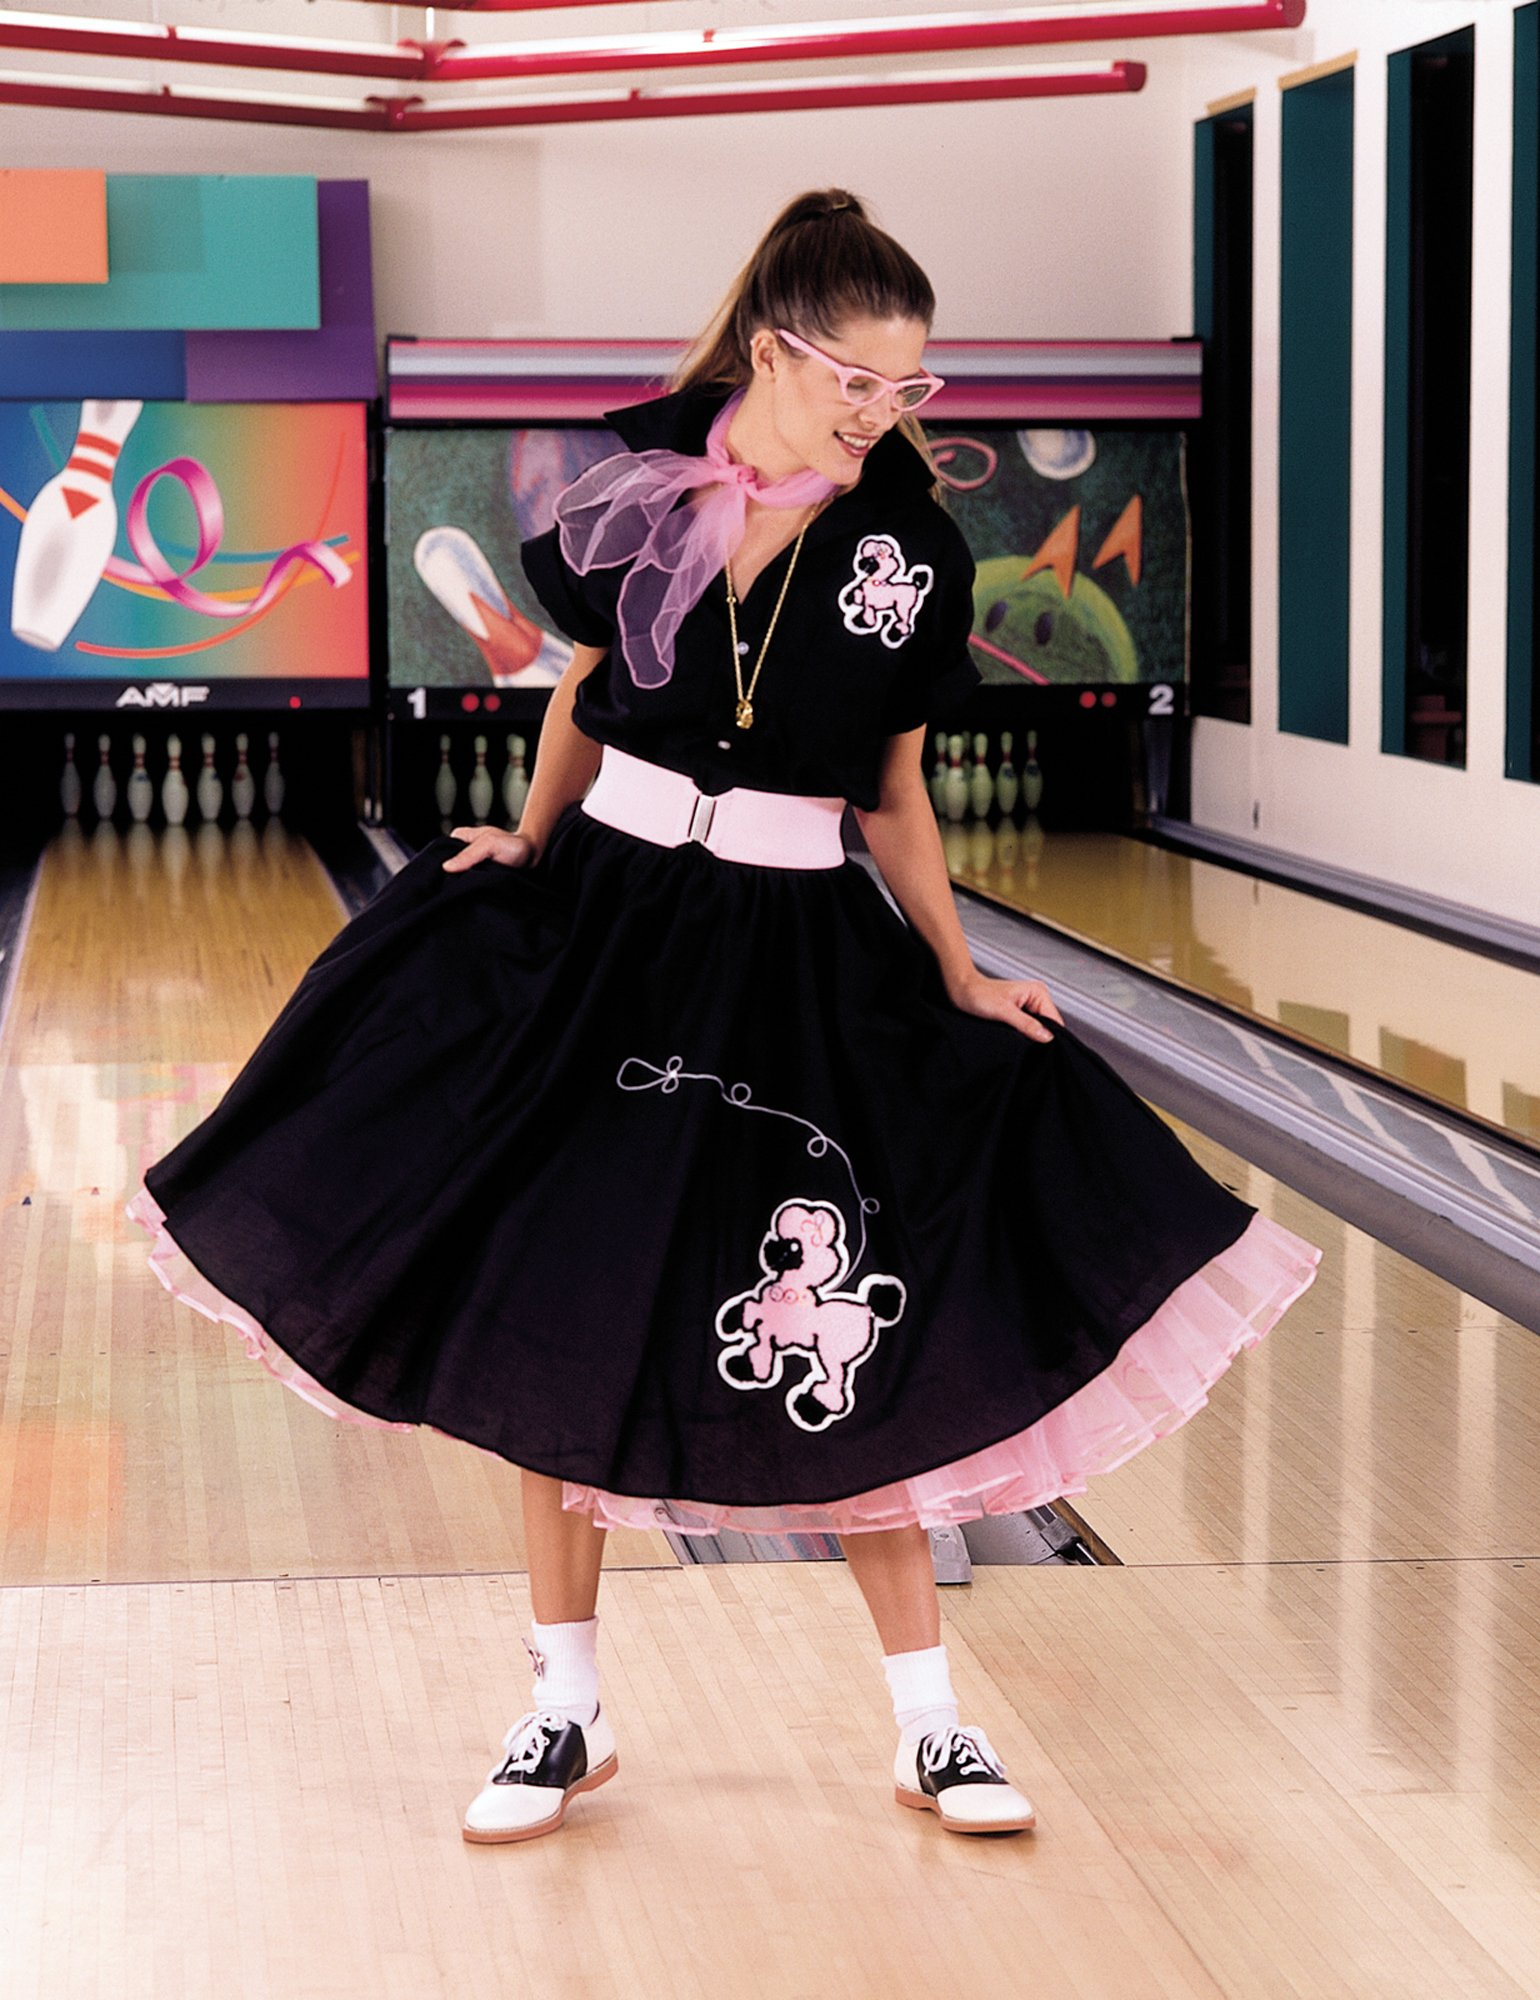 c7af3fb116979 Complete Poodle Skirt Outfit Plus (Black & Pink) Adult Costume [Historical  Costumes] - In Stock : About Costume Shop